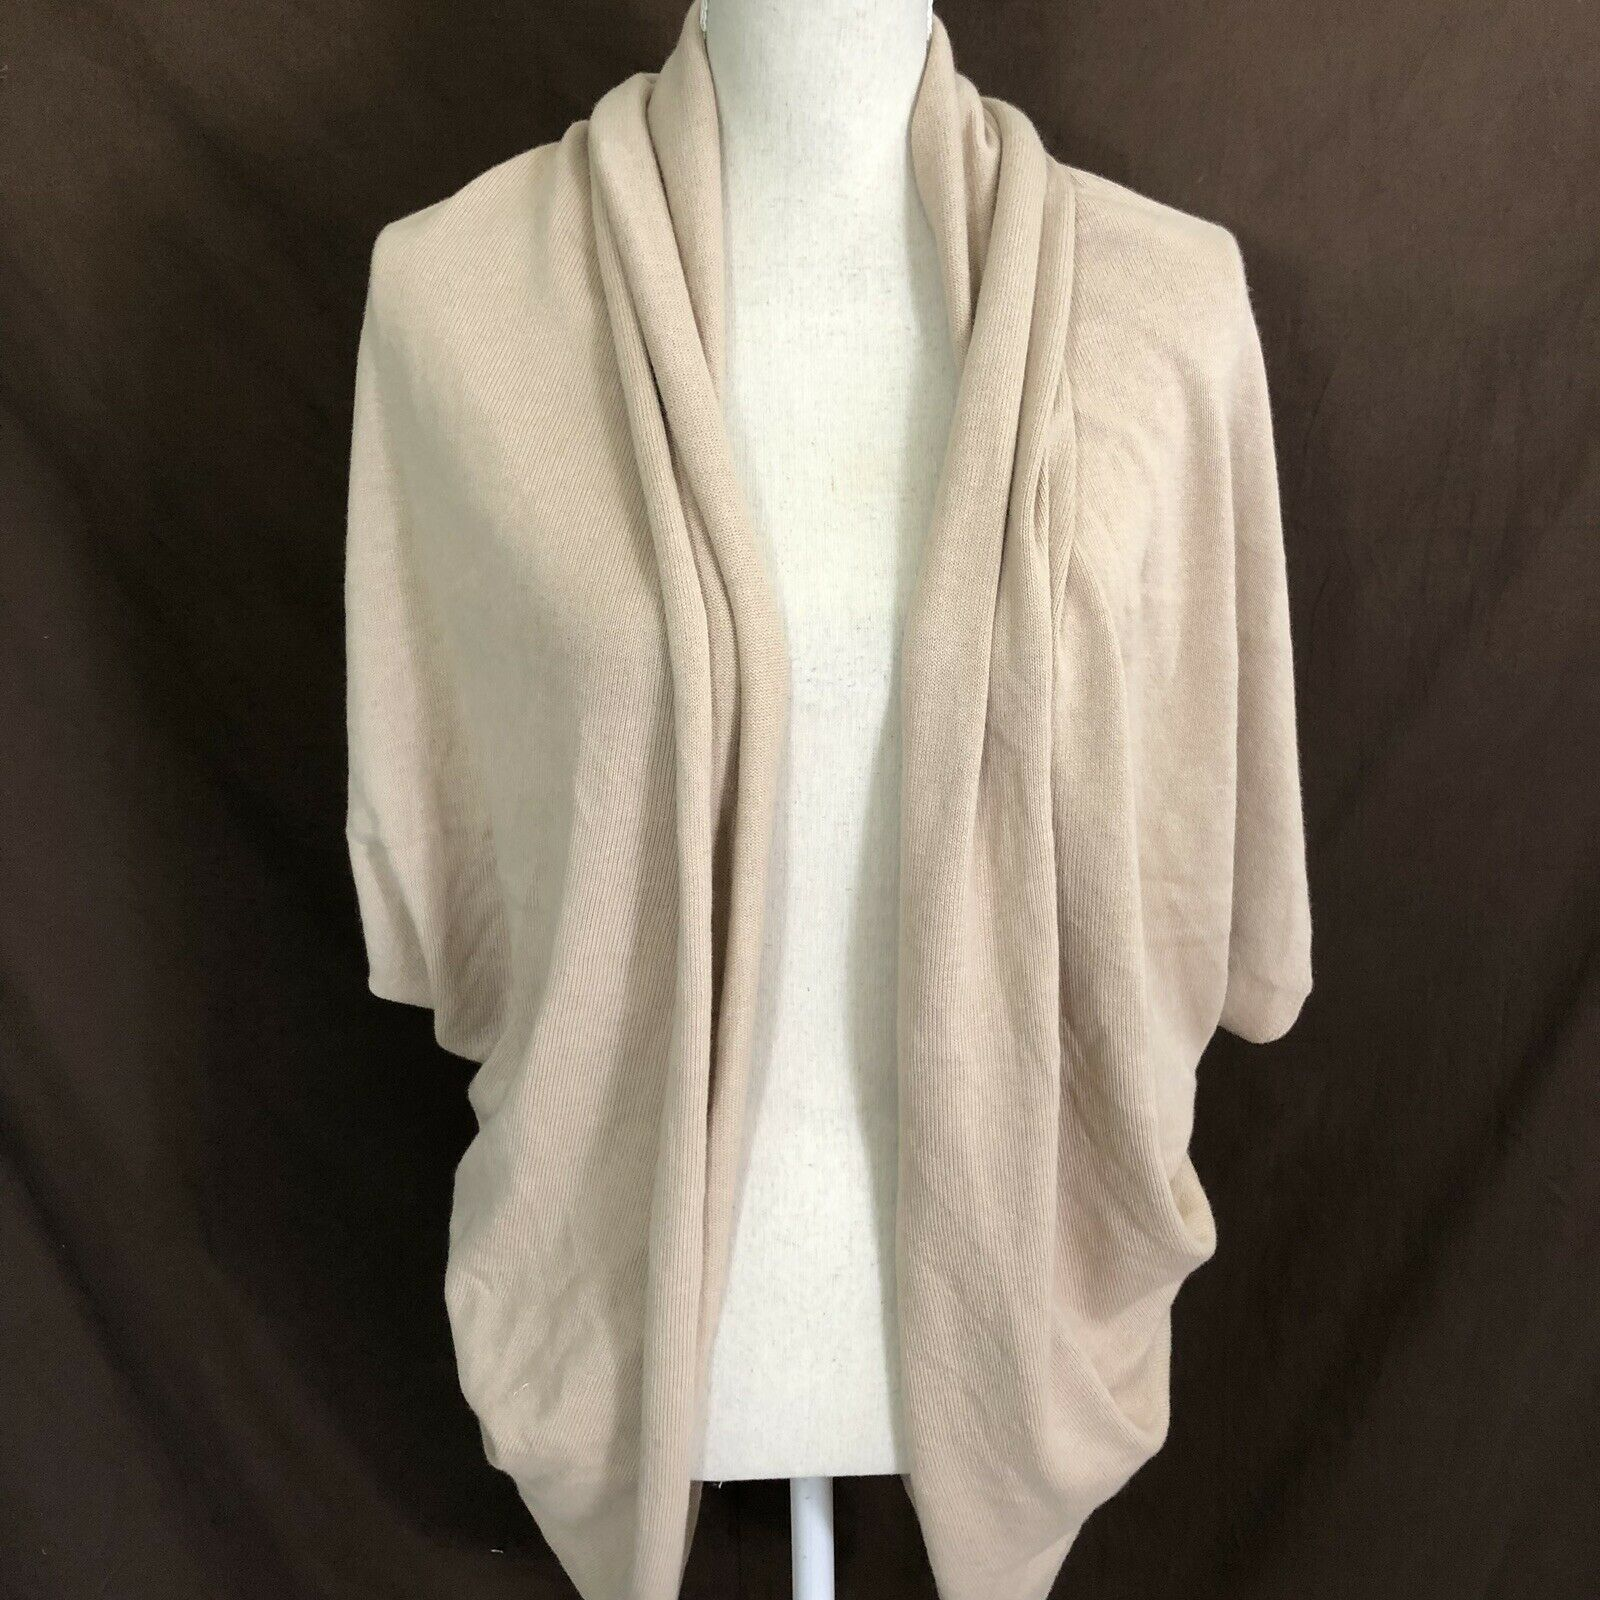 Beryll Cashmere Cotton Open Front Cardigan Soft One One One Size Beige 366a43